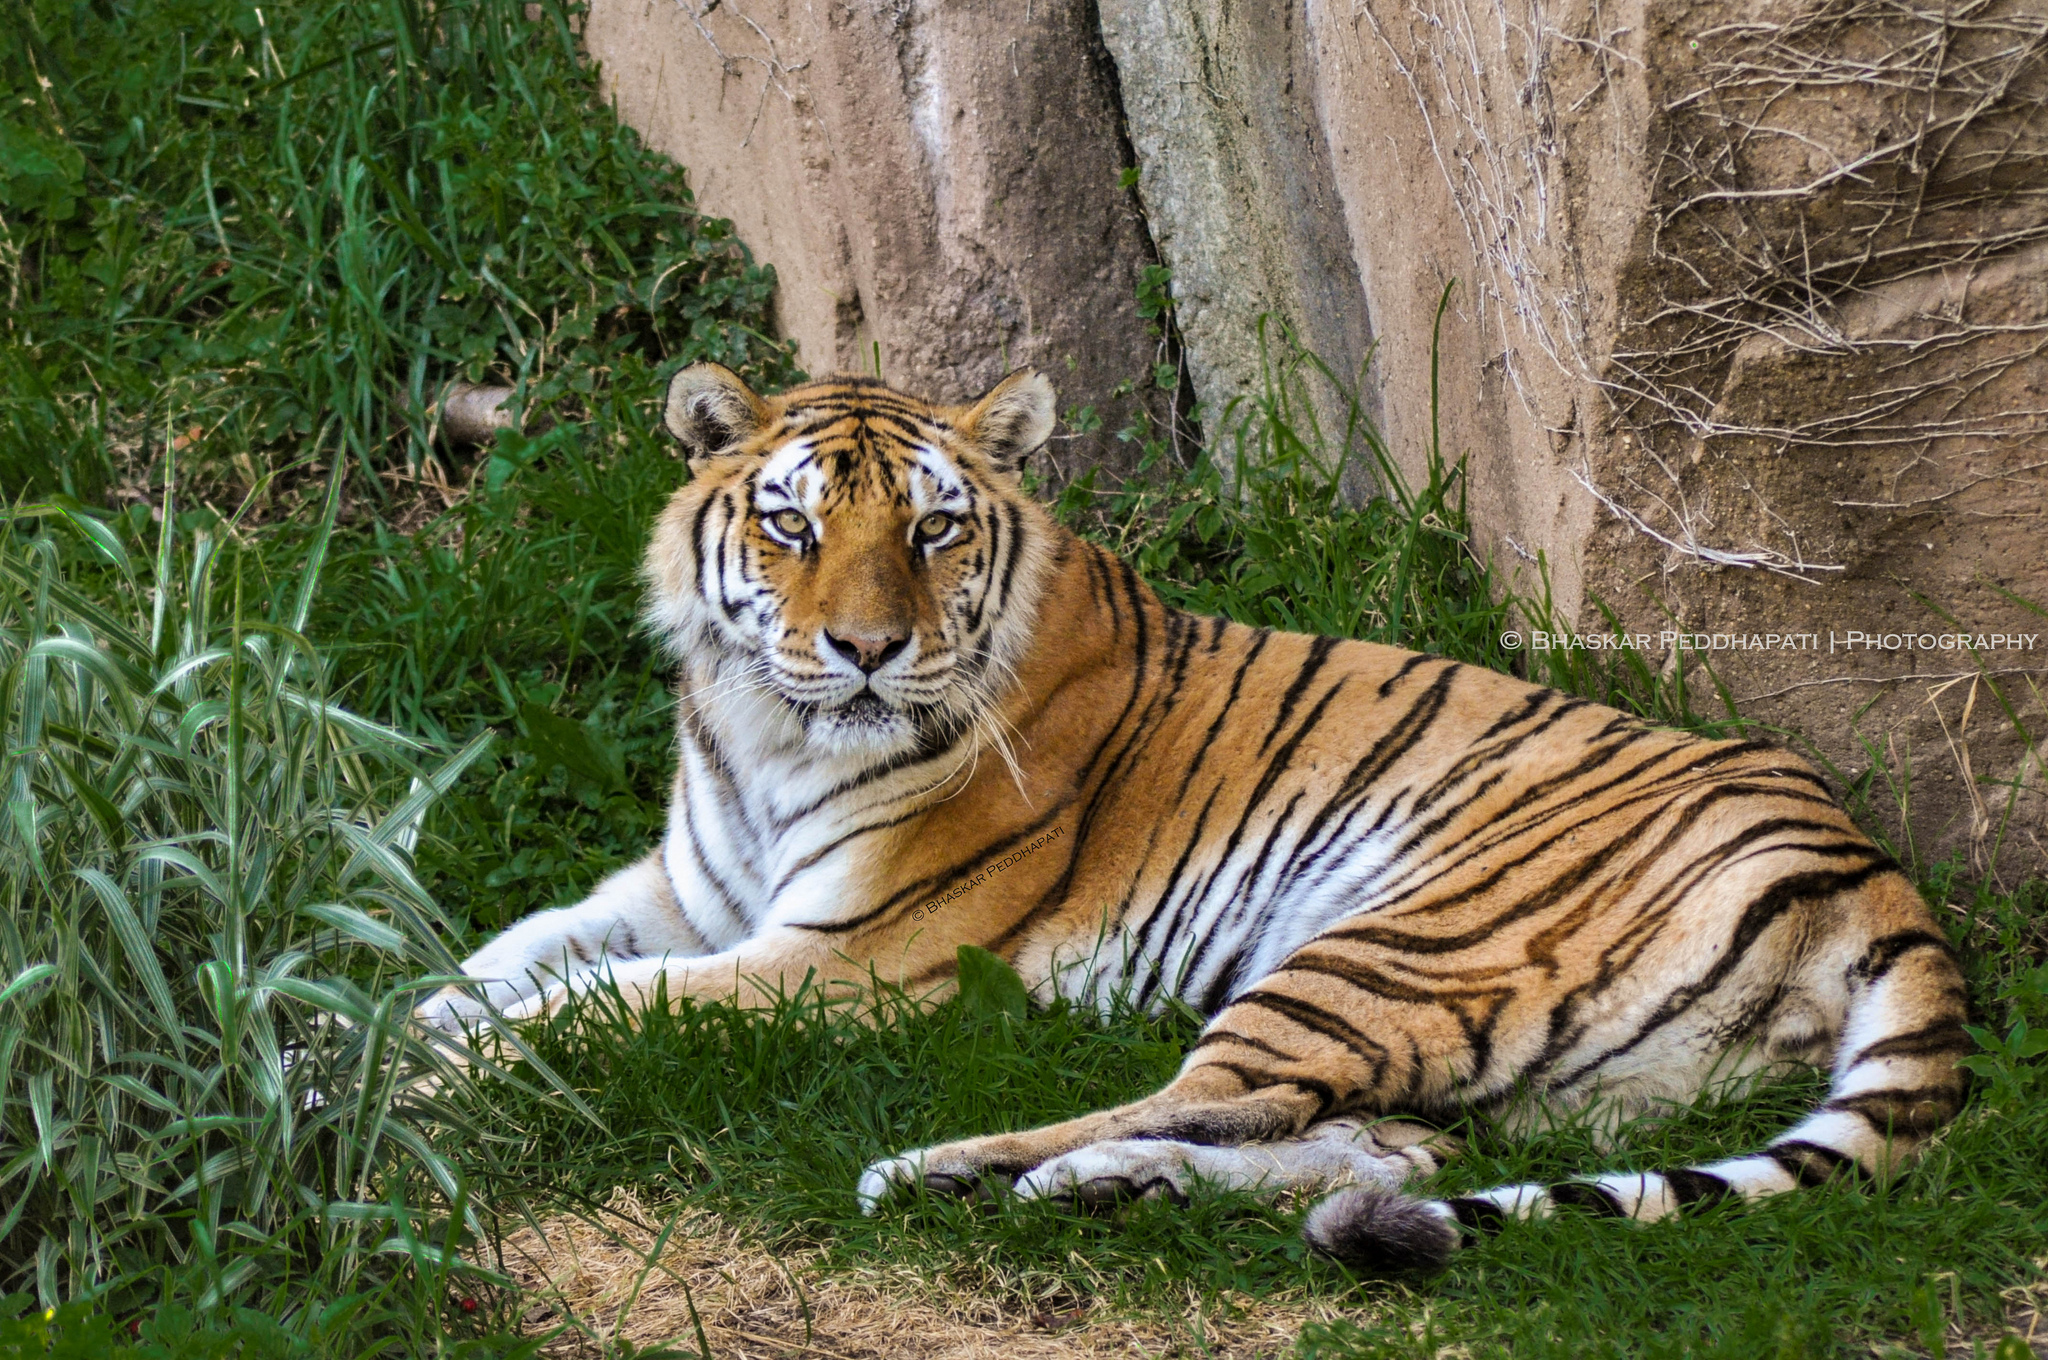 This tiger is one of the best attractions to see in Chicago ... photo by CC user peddhapati on Flickr